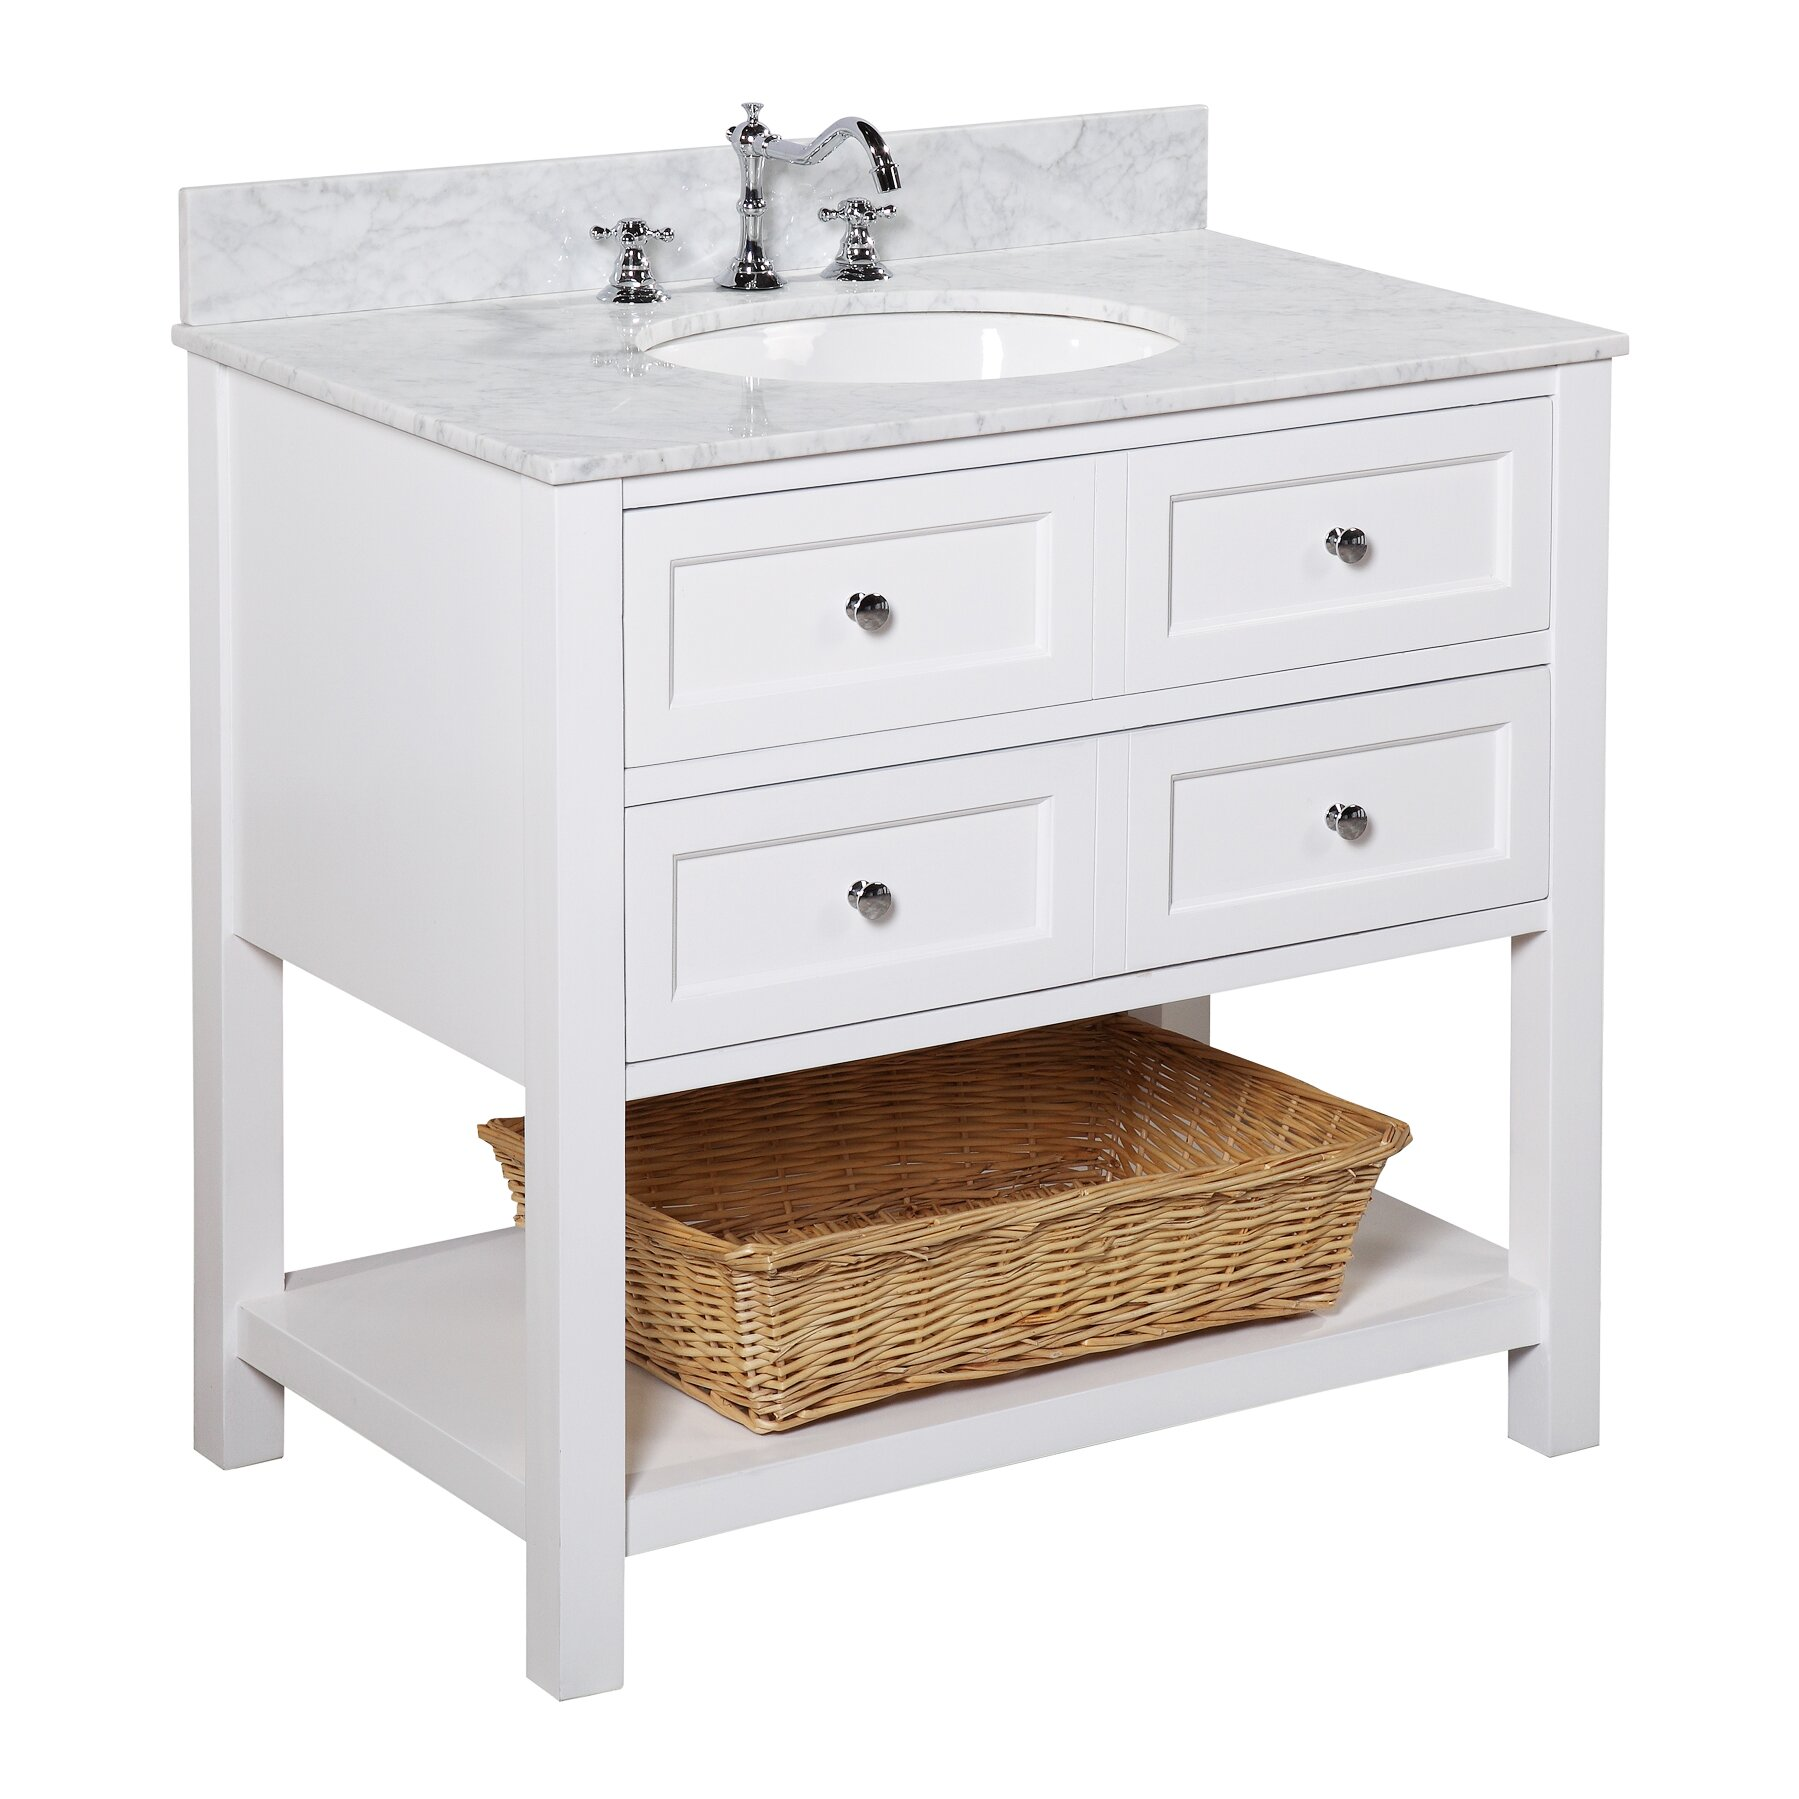 Bathroom Single Vanity Kbc New Yorker 36 Single Bathroom Vanity Set Reviews Wayfair